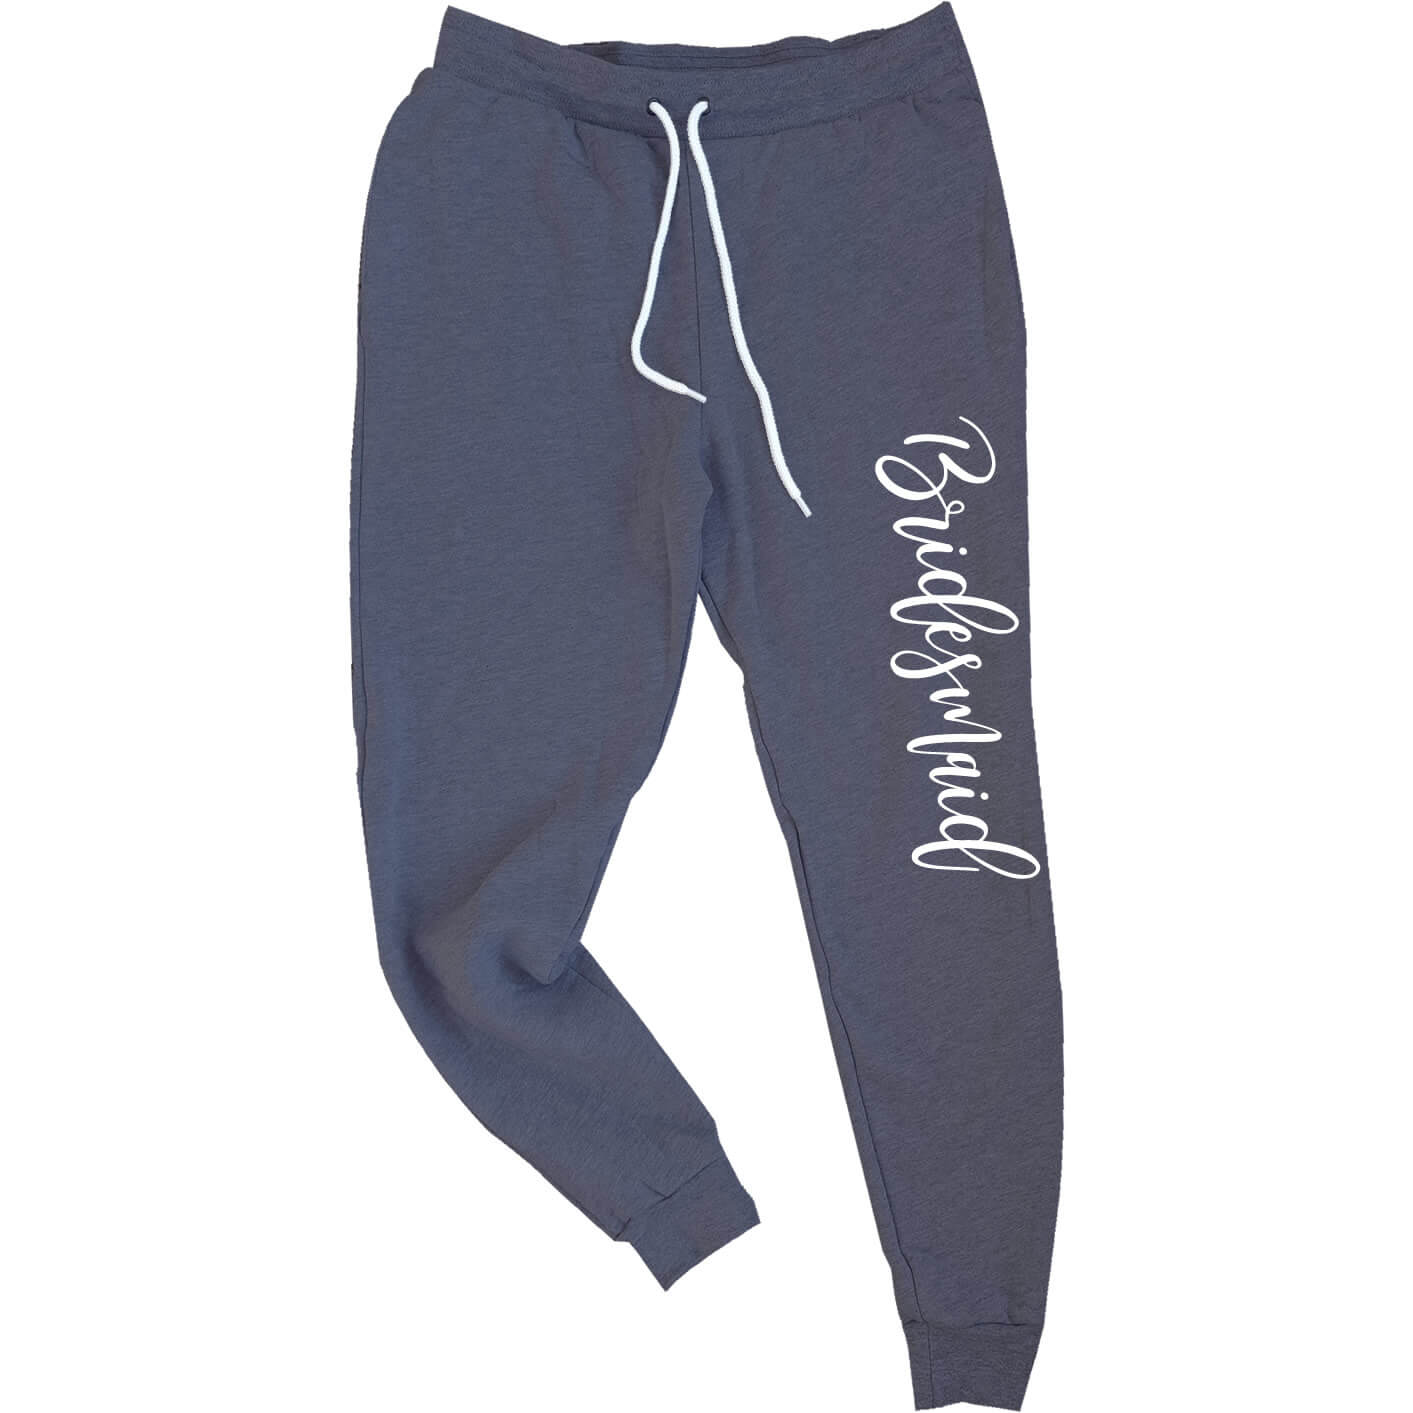 Personalized Bridesmaid Jogger Pants